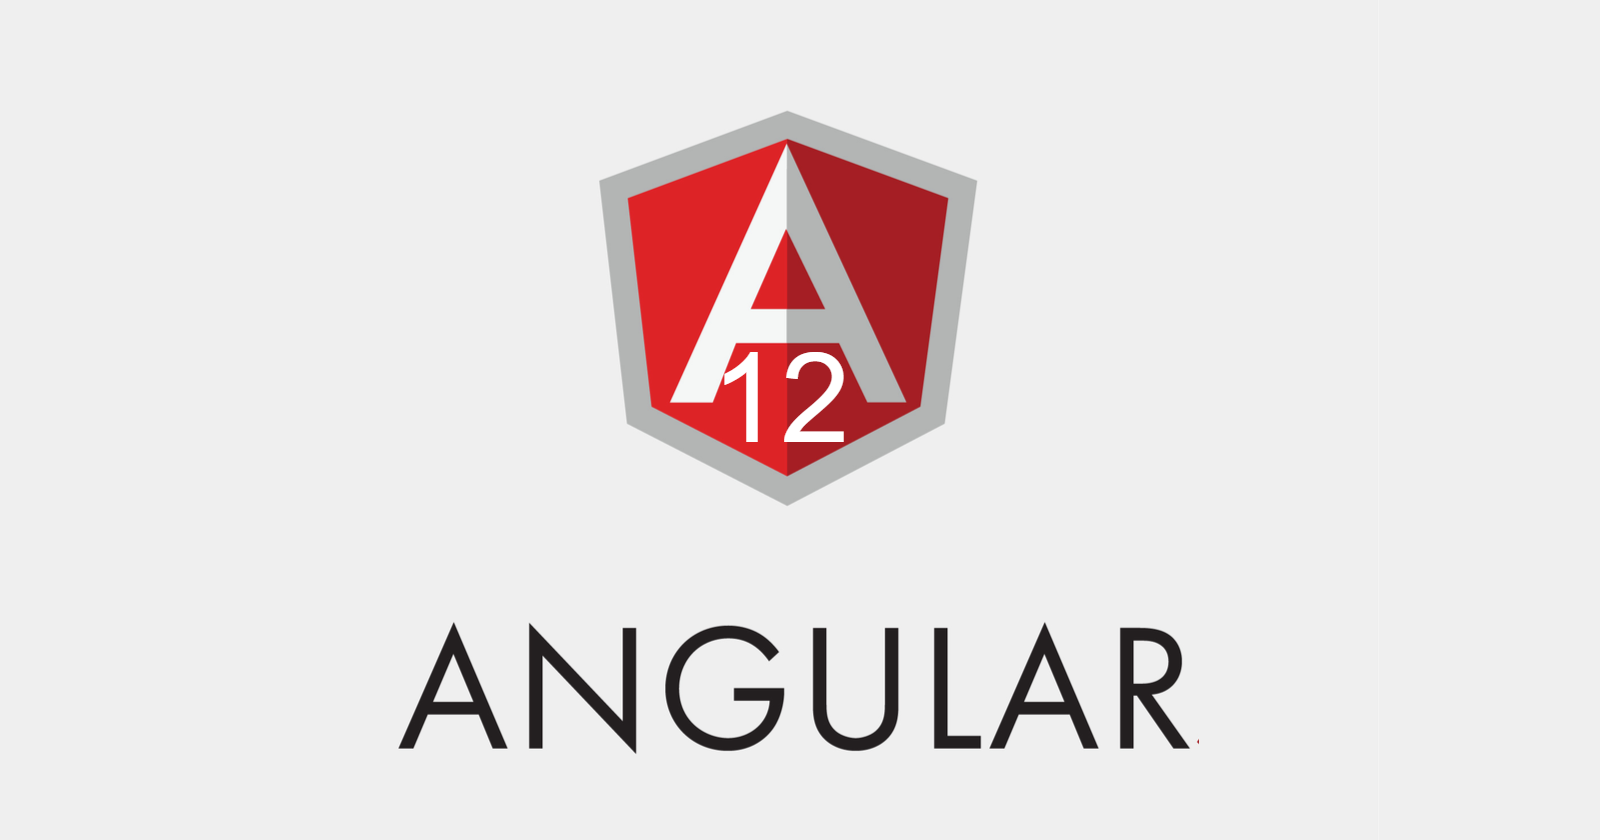 How to update angular version to 12?